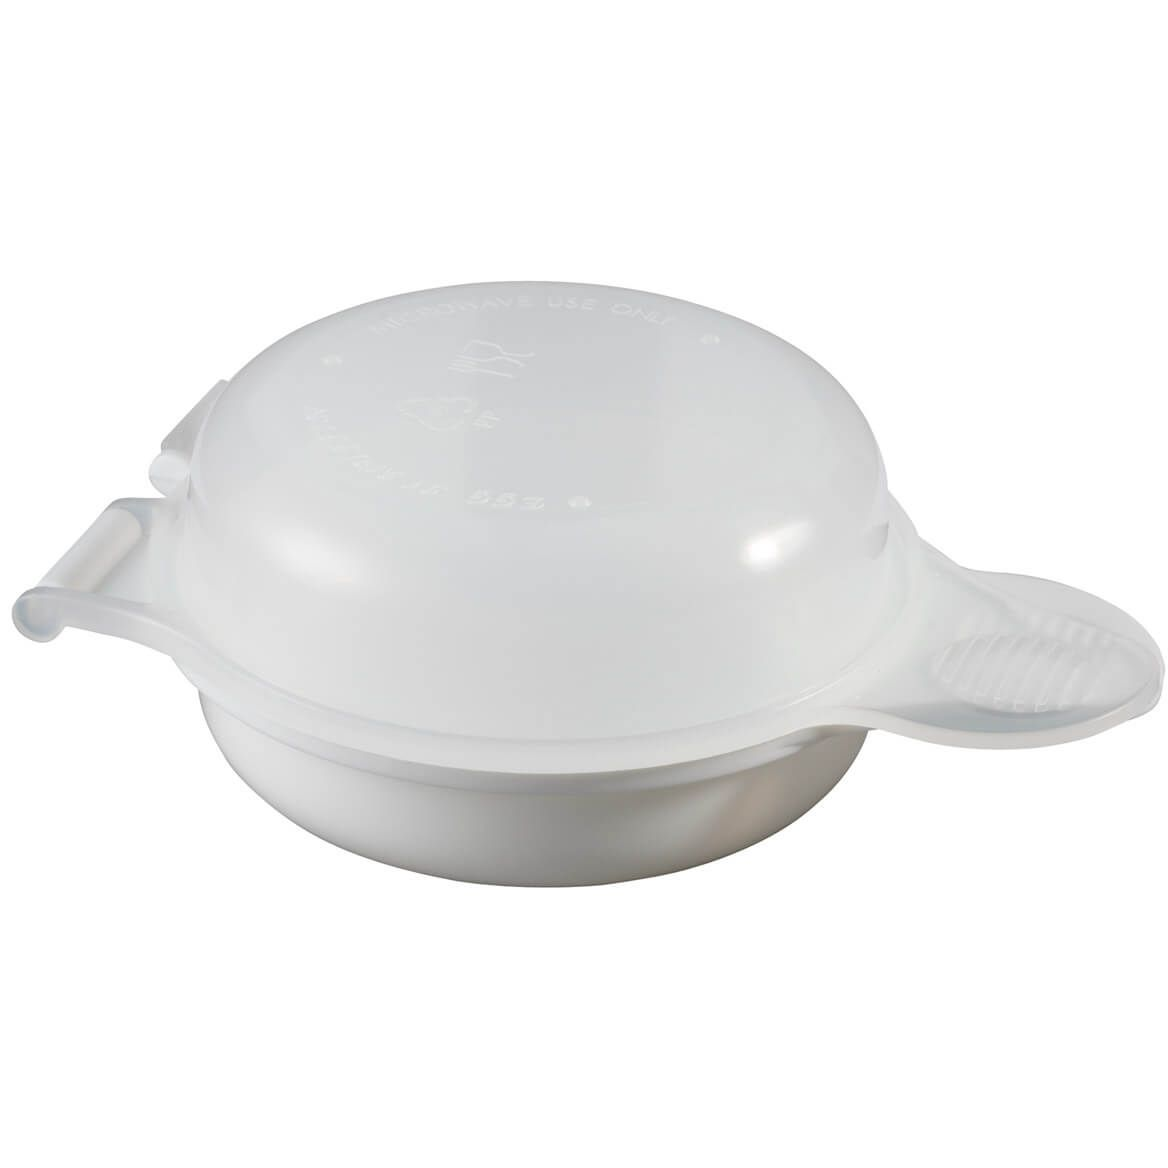 Microwave Egg Muffin Cooker-330859